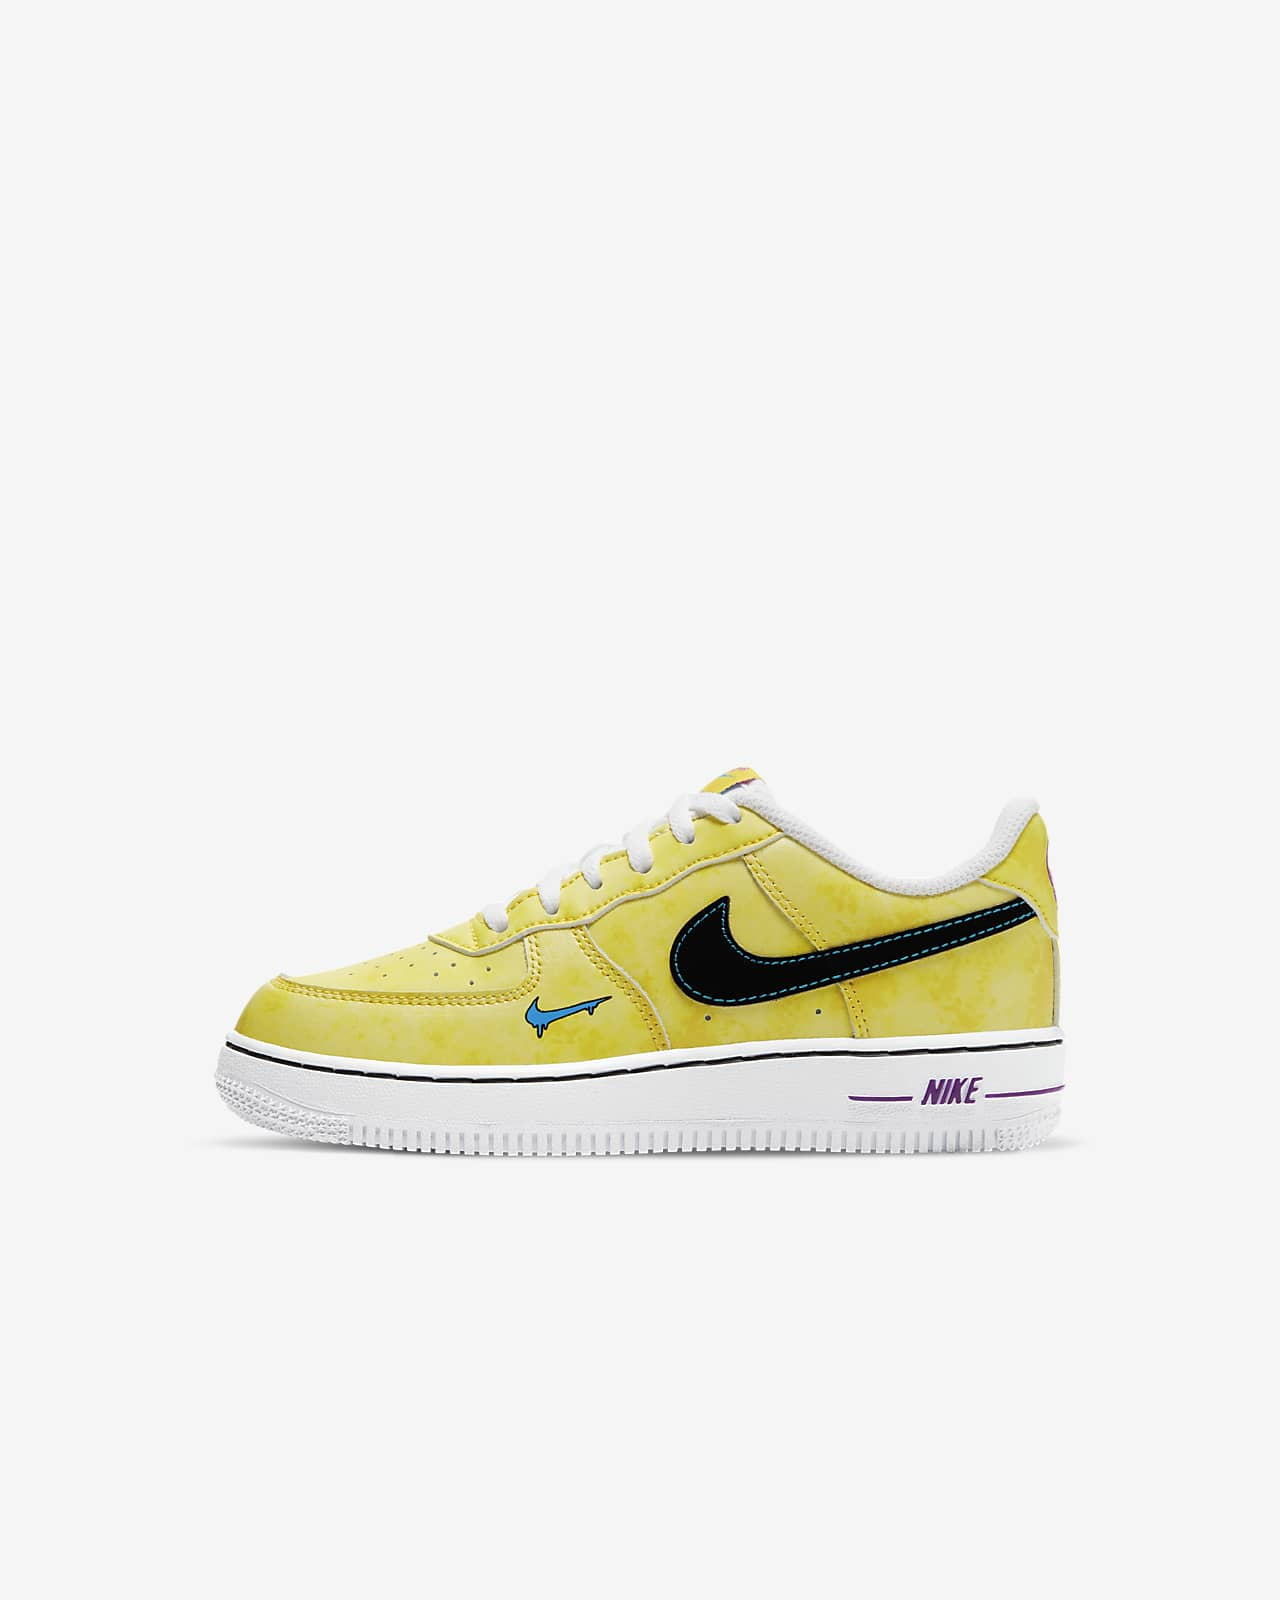 Chicle Mancha Agotar  Nike Force 1 LV8 3 Little Kids' Shoe. Nike.com